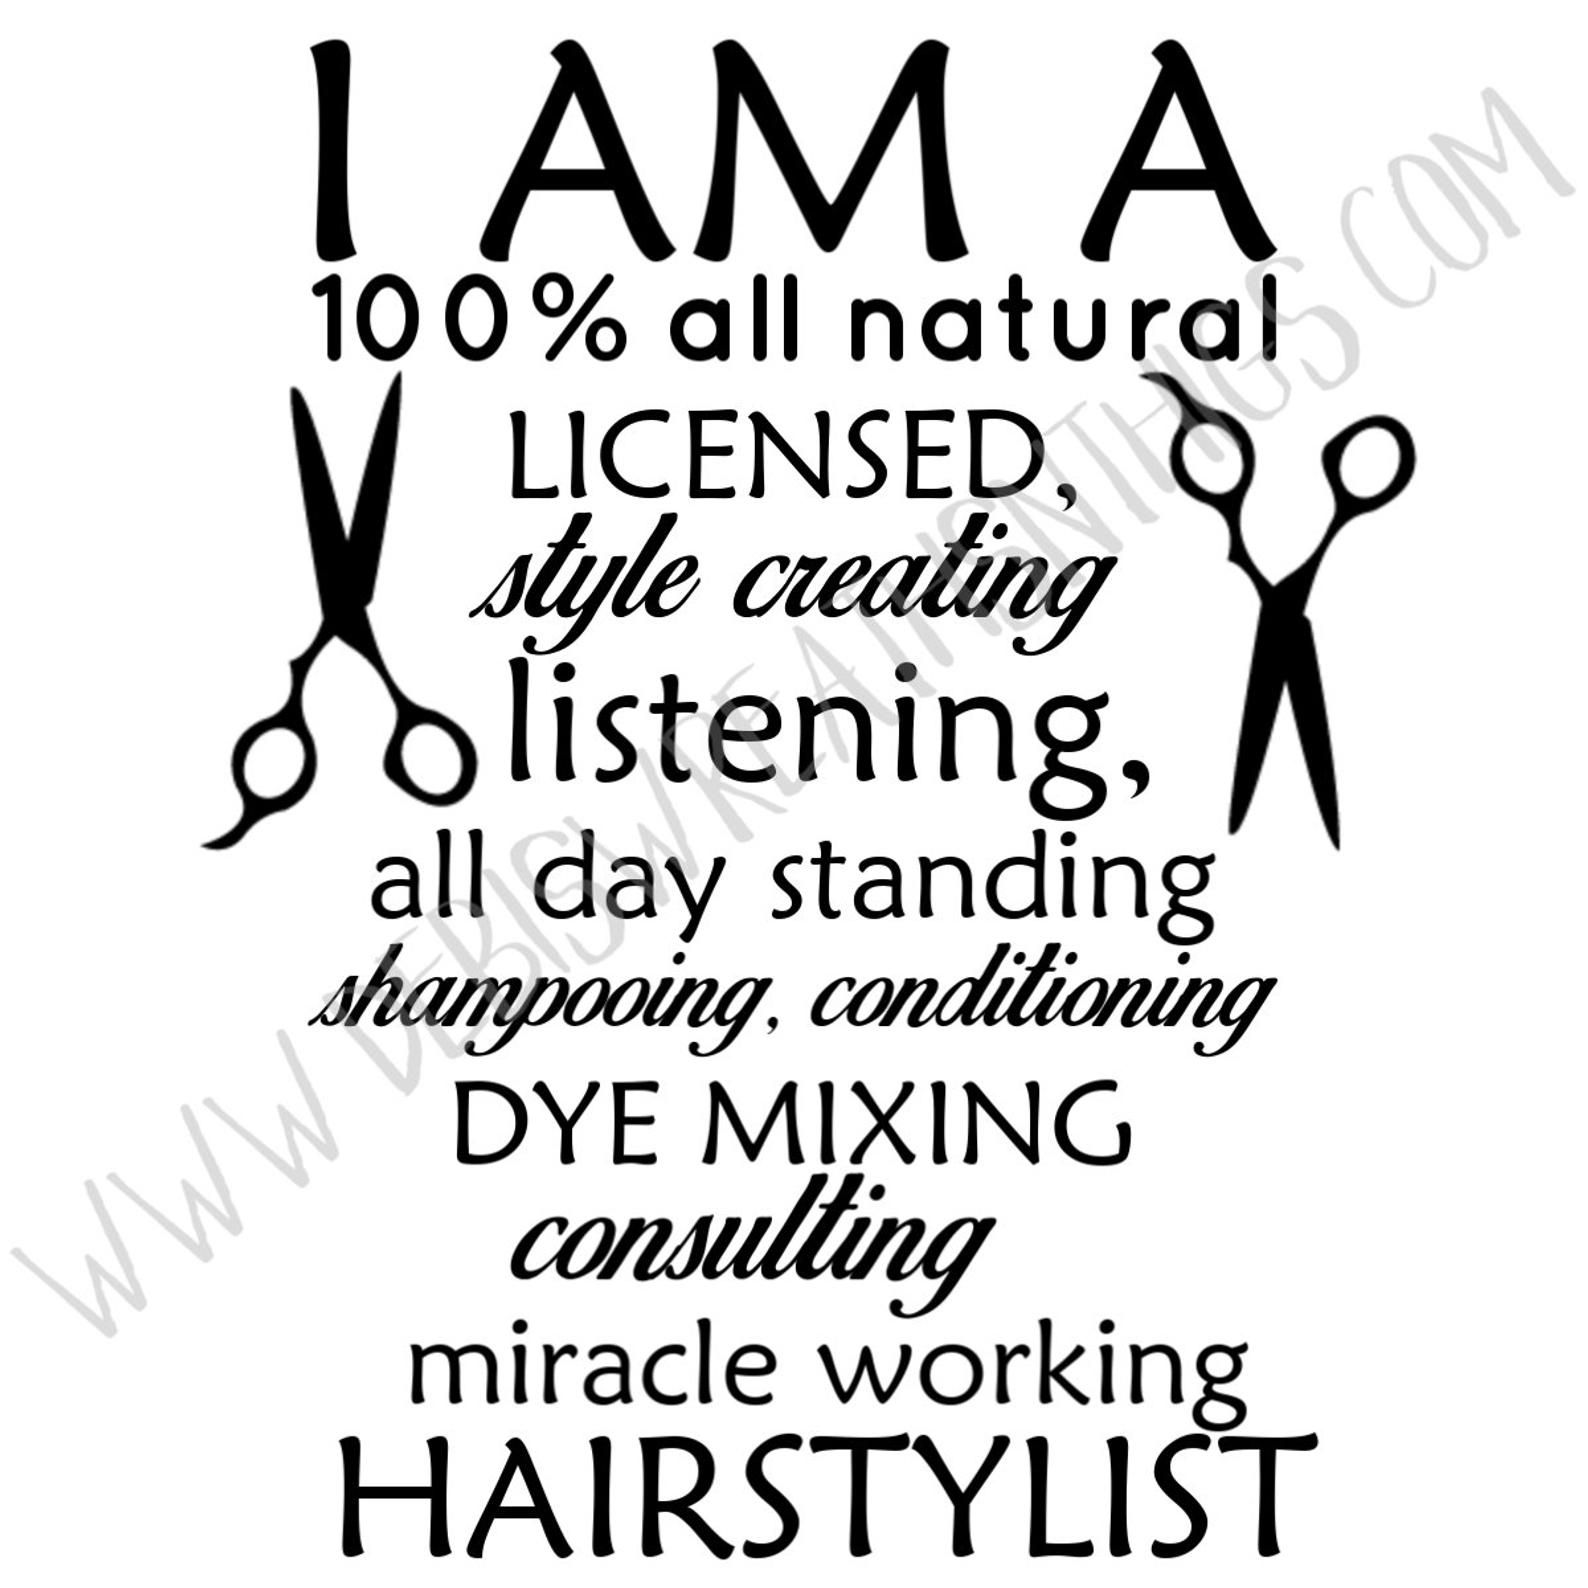 Hairstylist Svg Hairstylist Sign Barber Svg Hair Svg Etsy Hairstylist Quotes Stylist Quotes Hairdresser Quotes